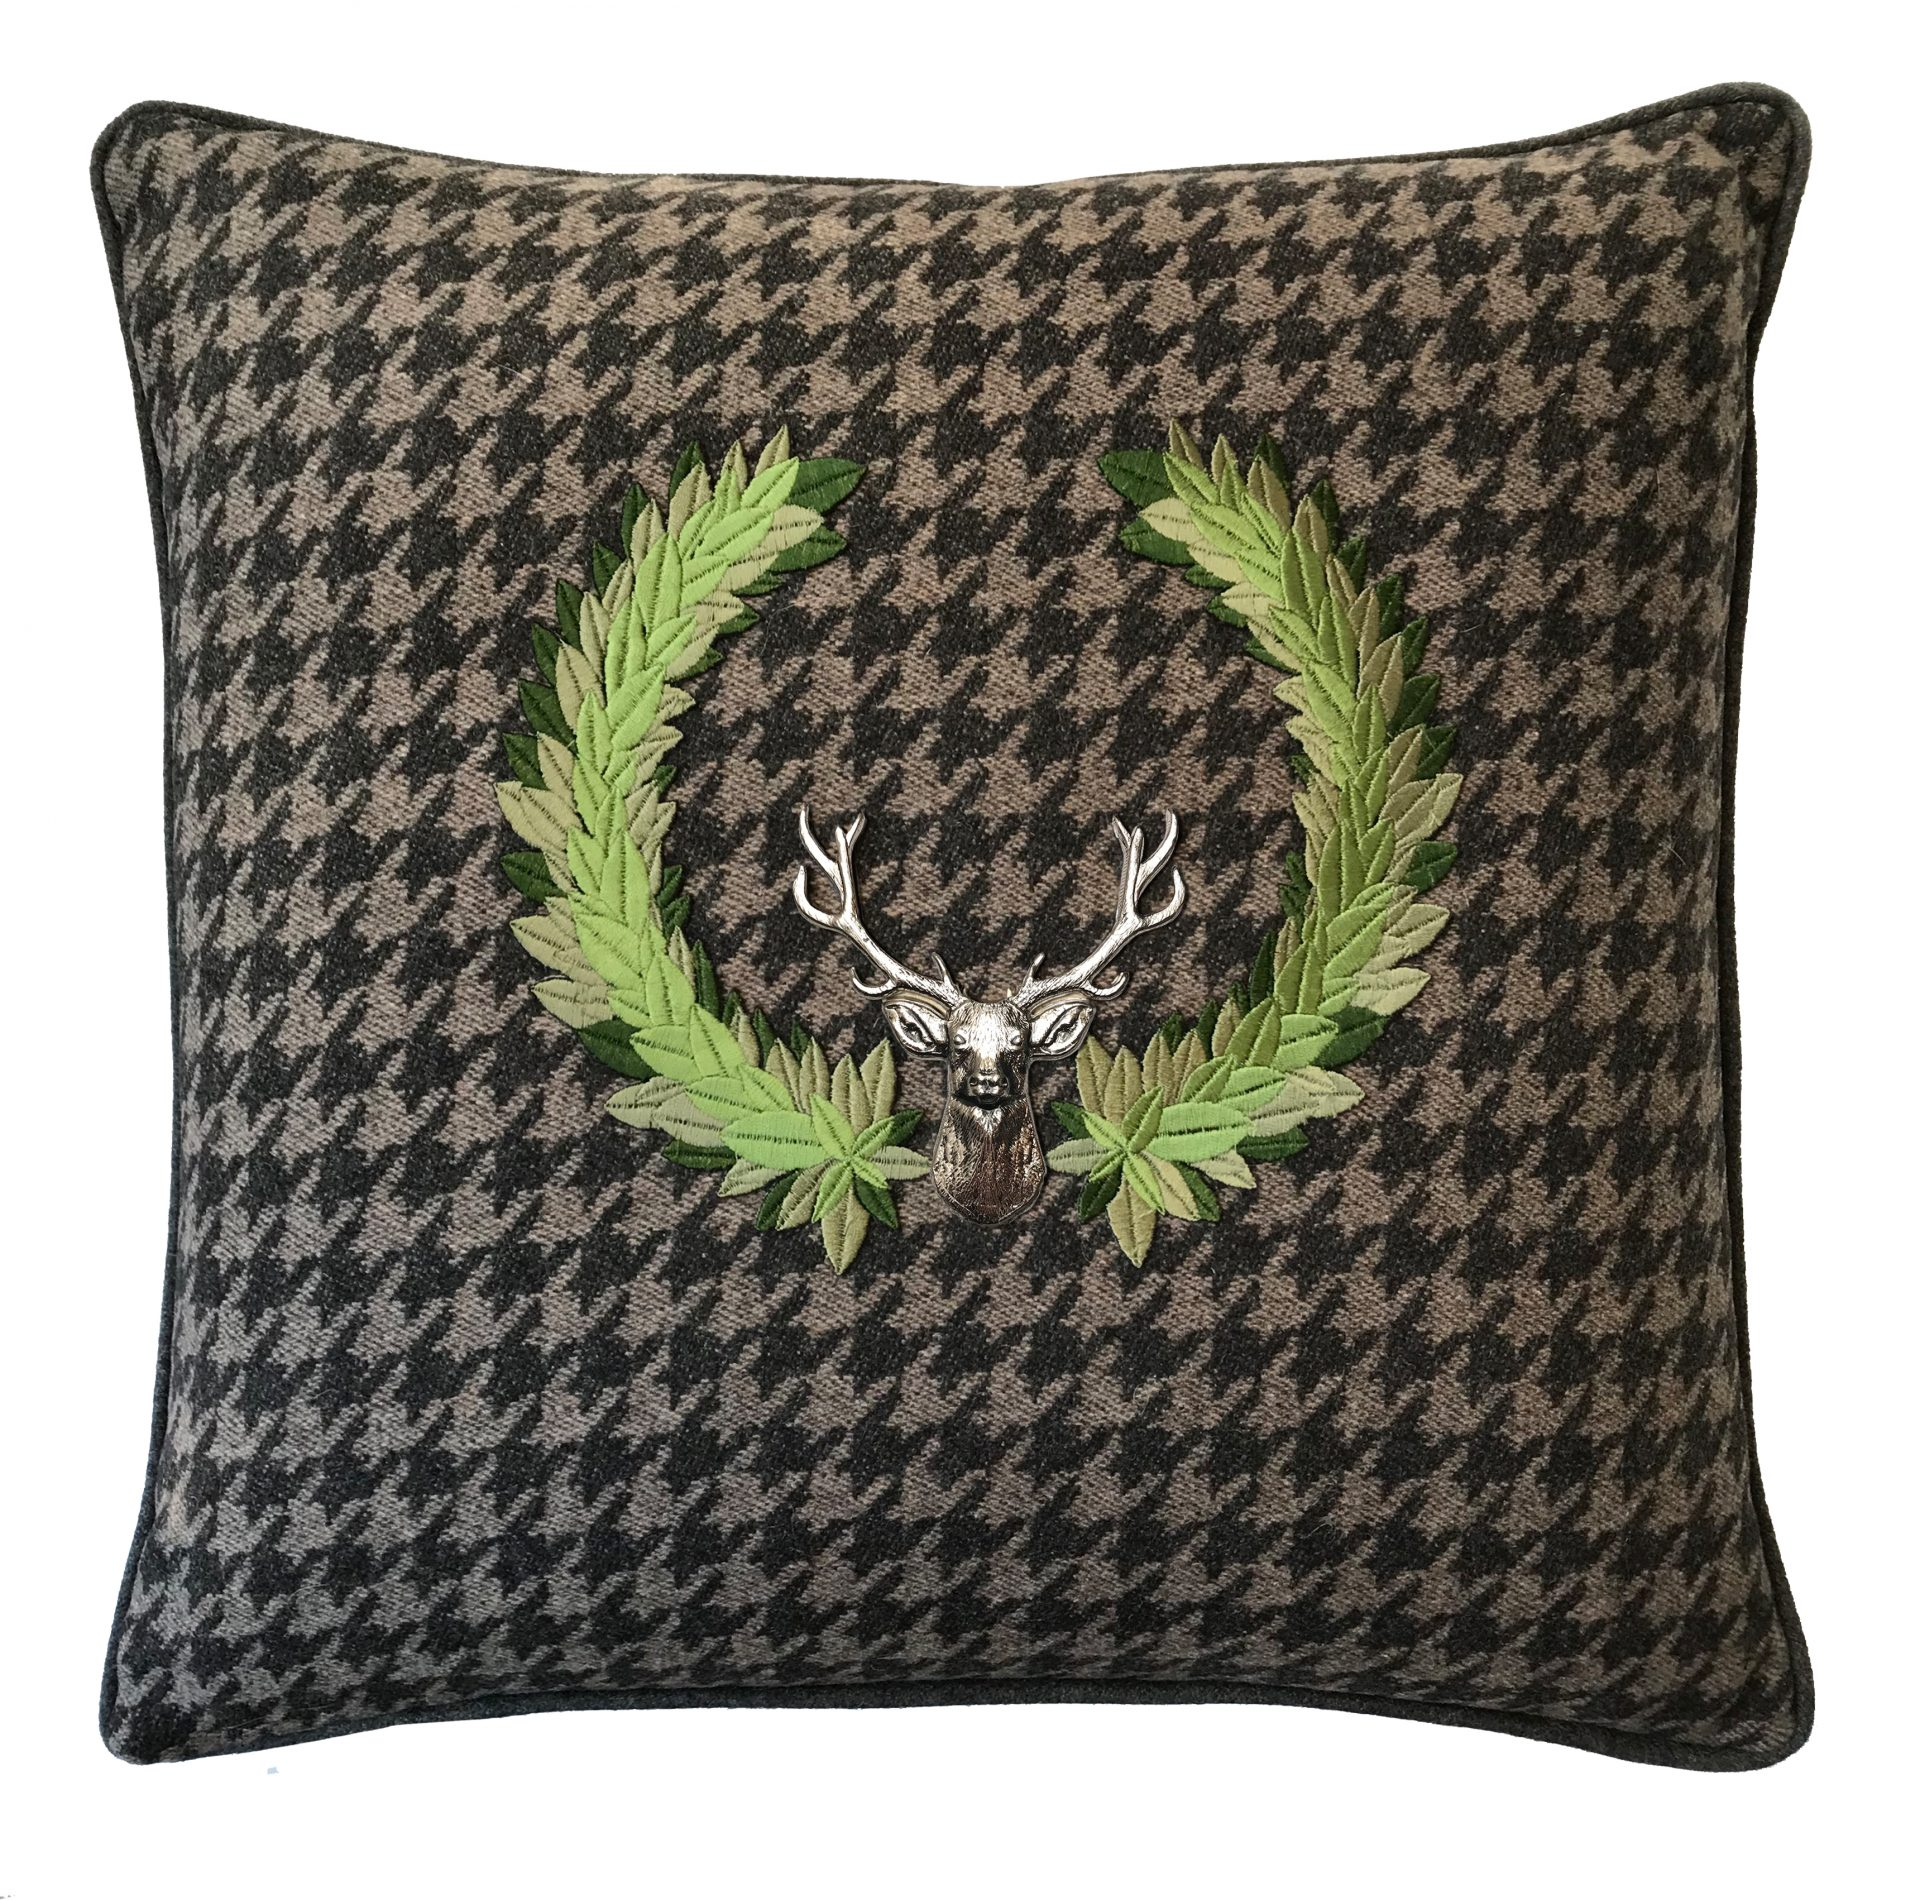 Hounds tooth throw pillow with embroidered detail and silver stag.